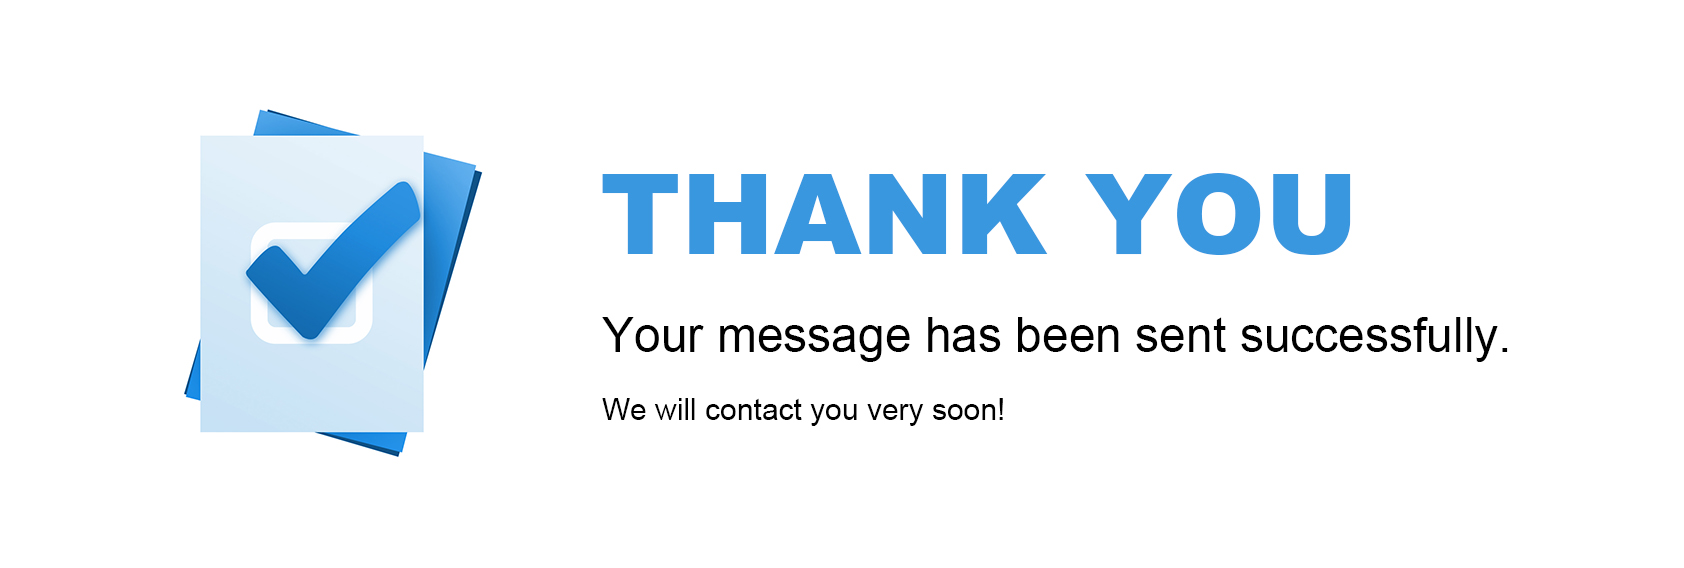 Thank You for Contacting Us